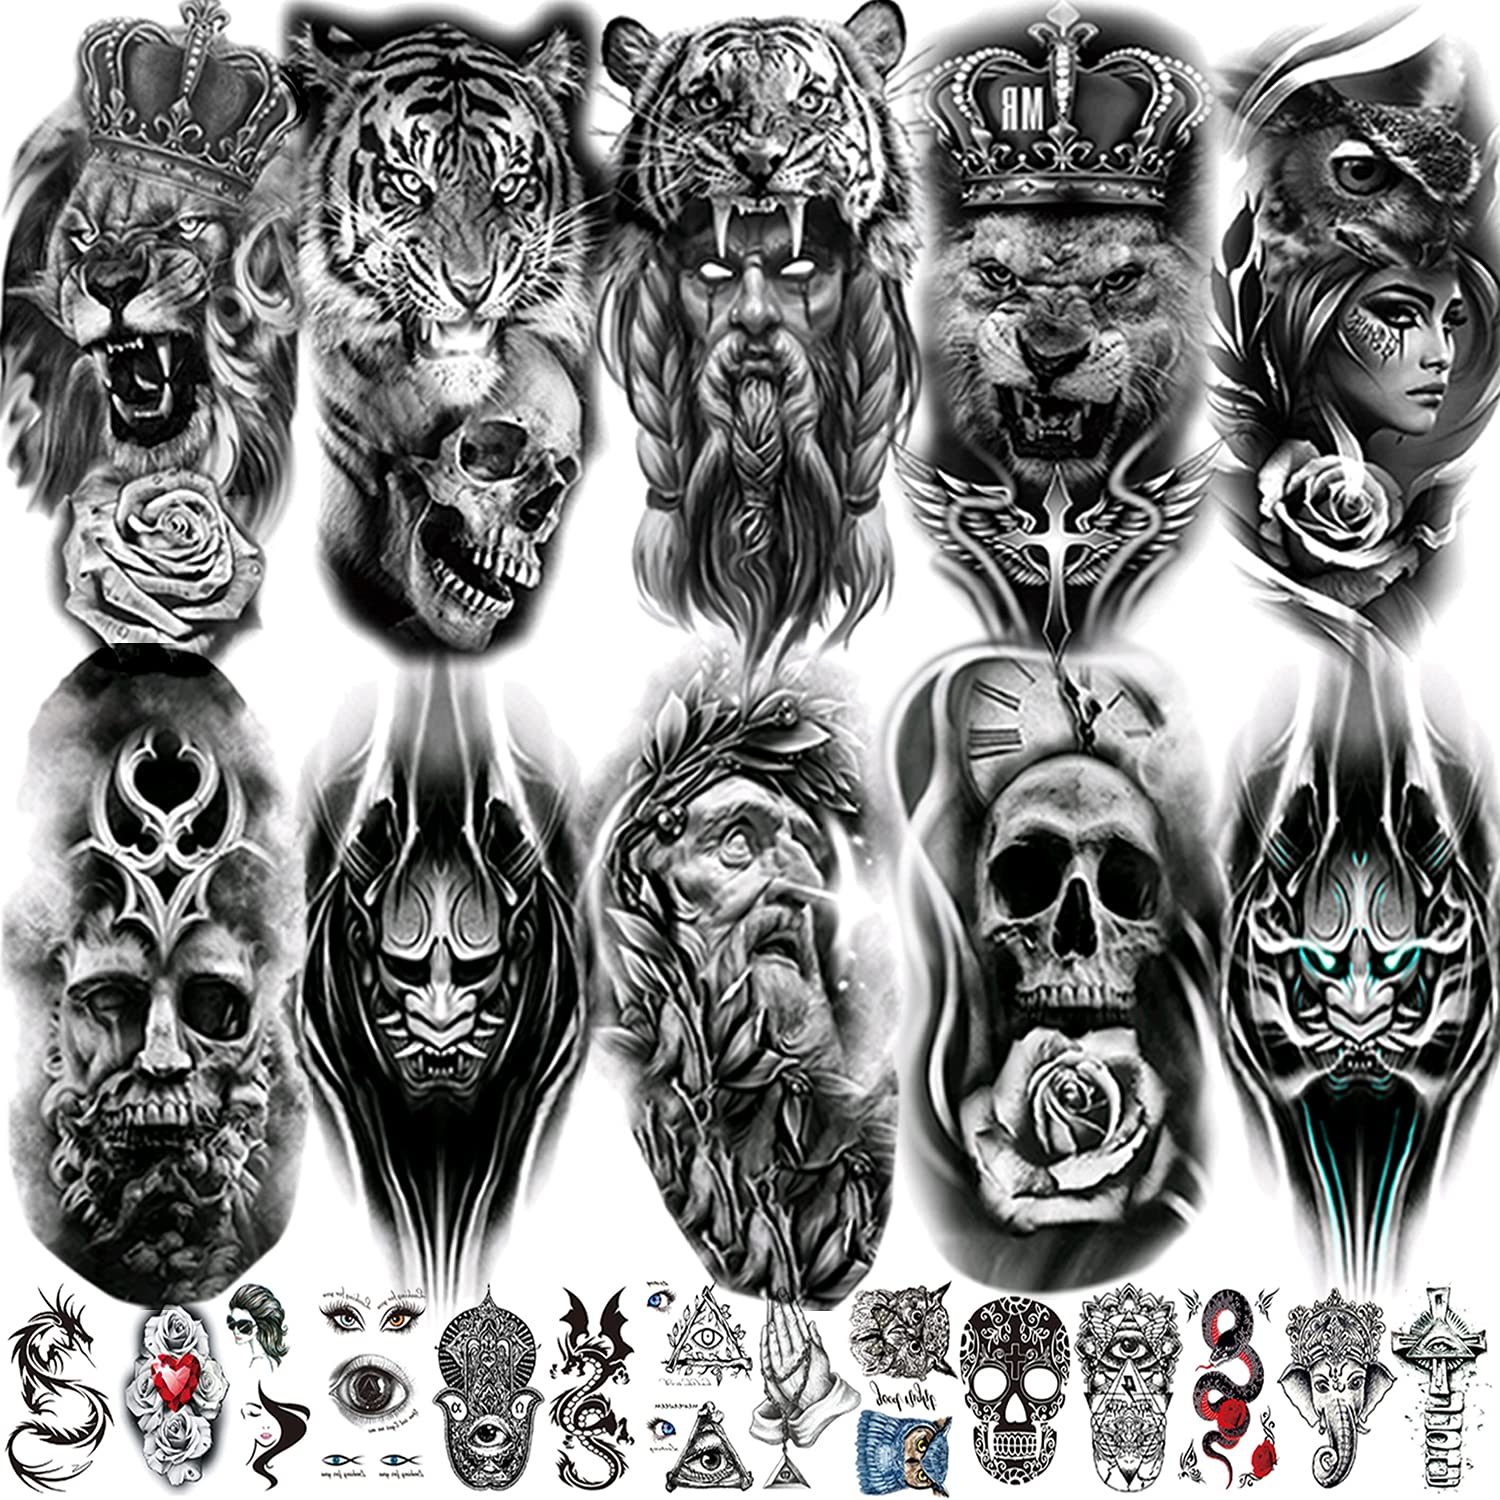 24 Sheets Fake Limited Special Price Tattoos Temporary Men for Max 40% OFF Adults Women Ta